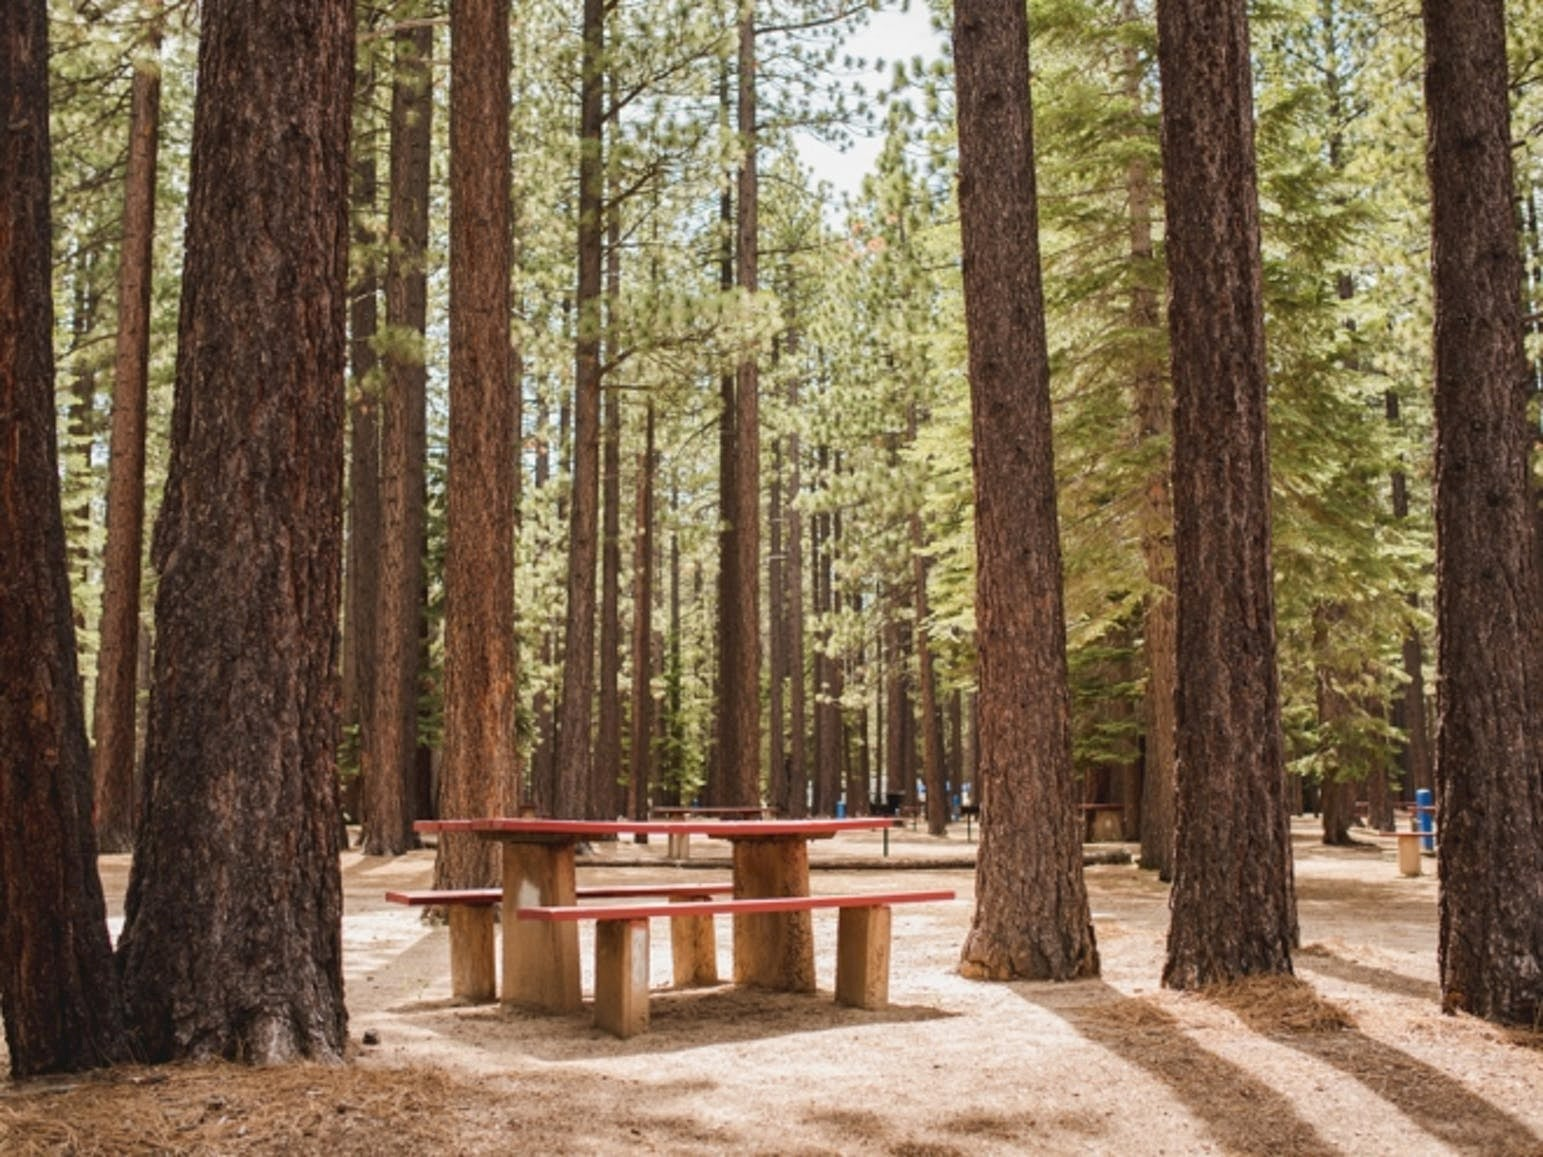 Picnic table at a campsite in sunlit redwood forest.